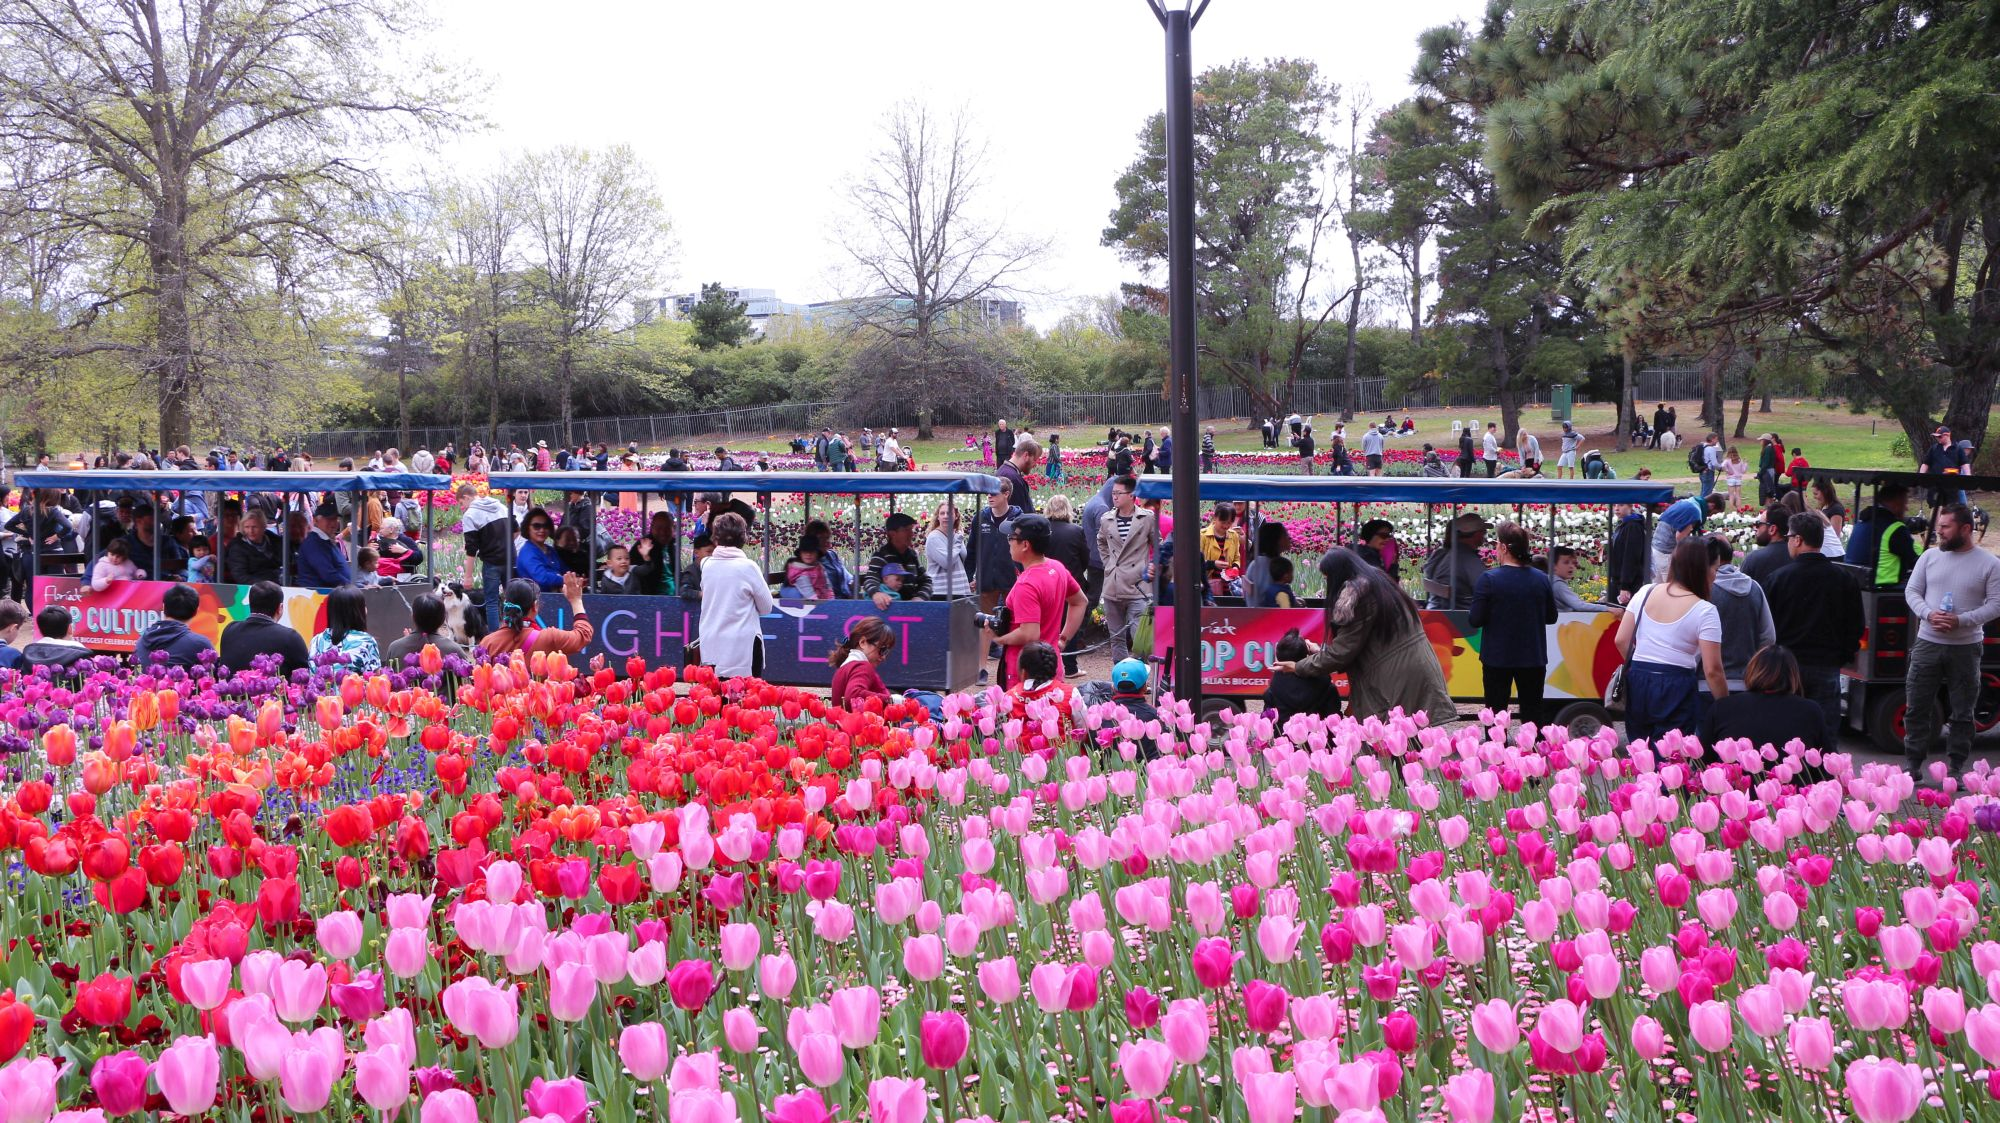 Biggest floral festival in Southern Hemisphere